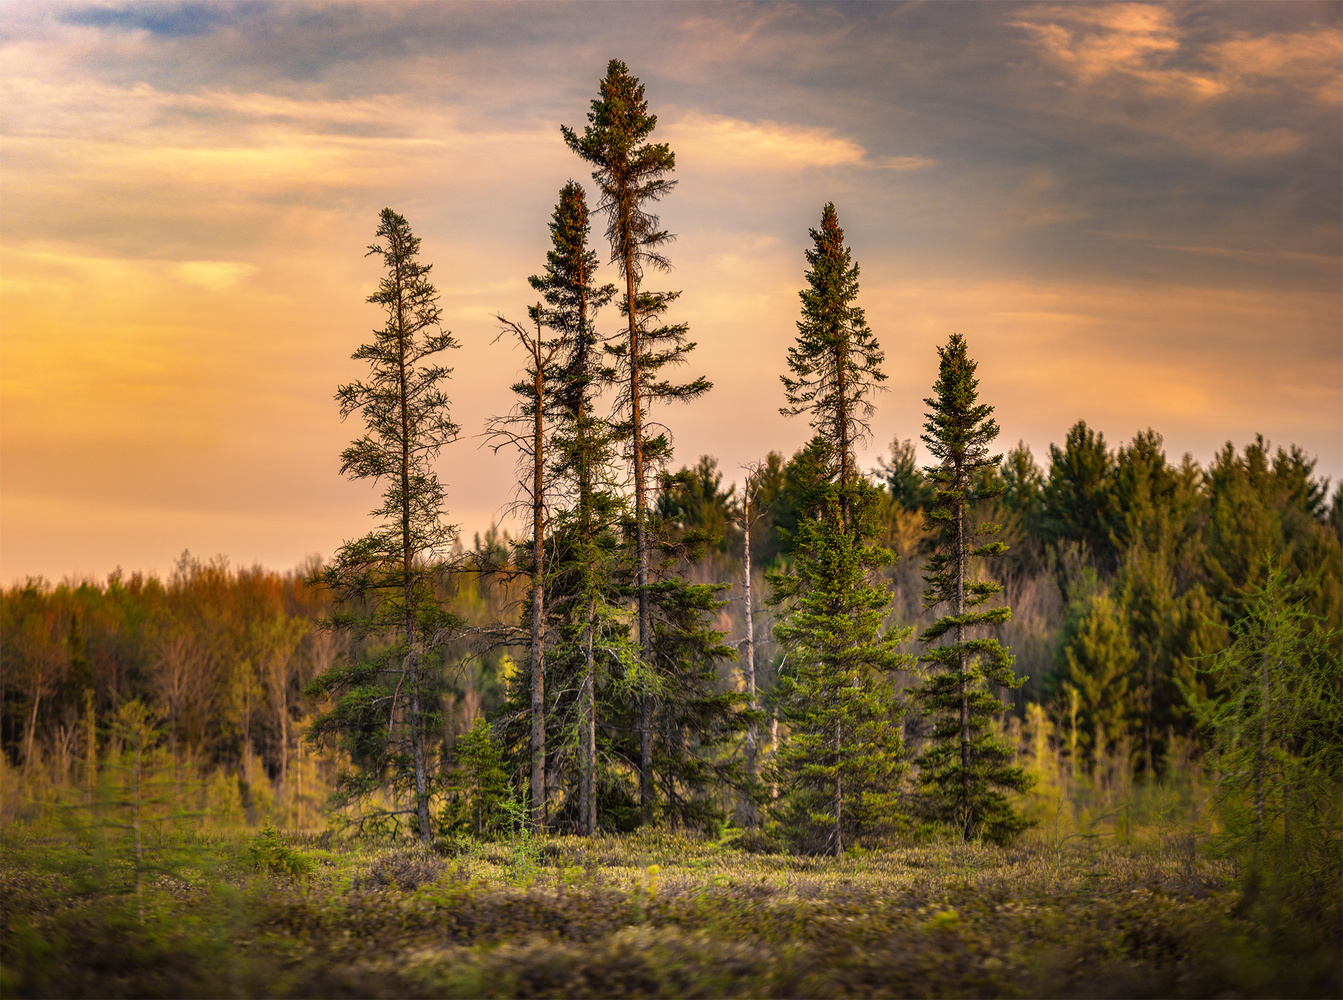 Black Spruce by Michael Higgins